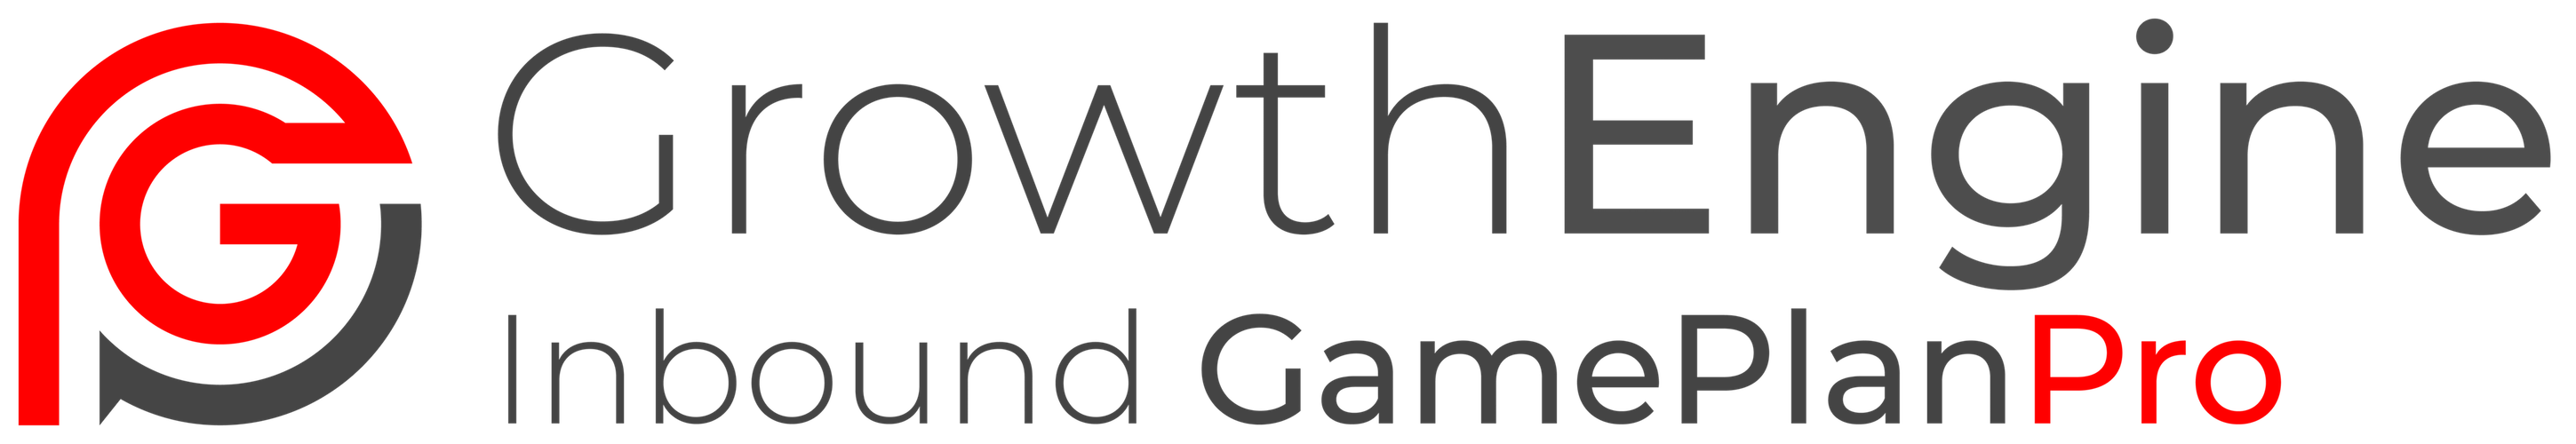 GrowthEngine - Inbound GamePlan Pro